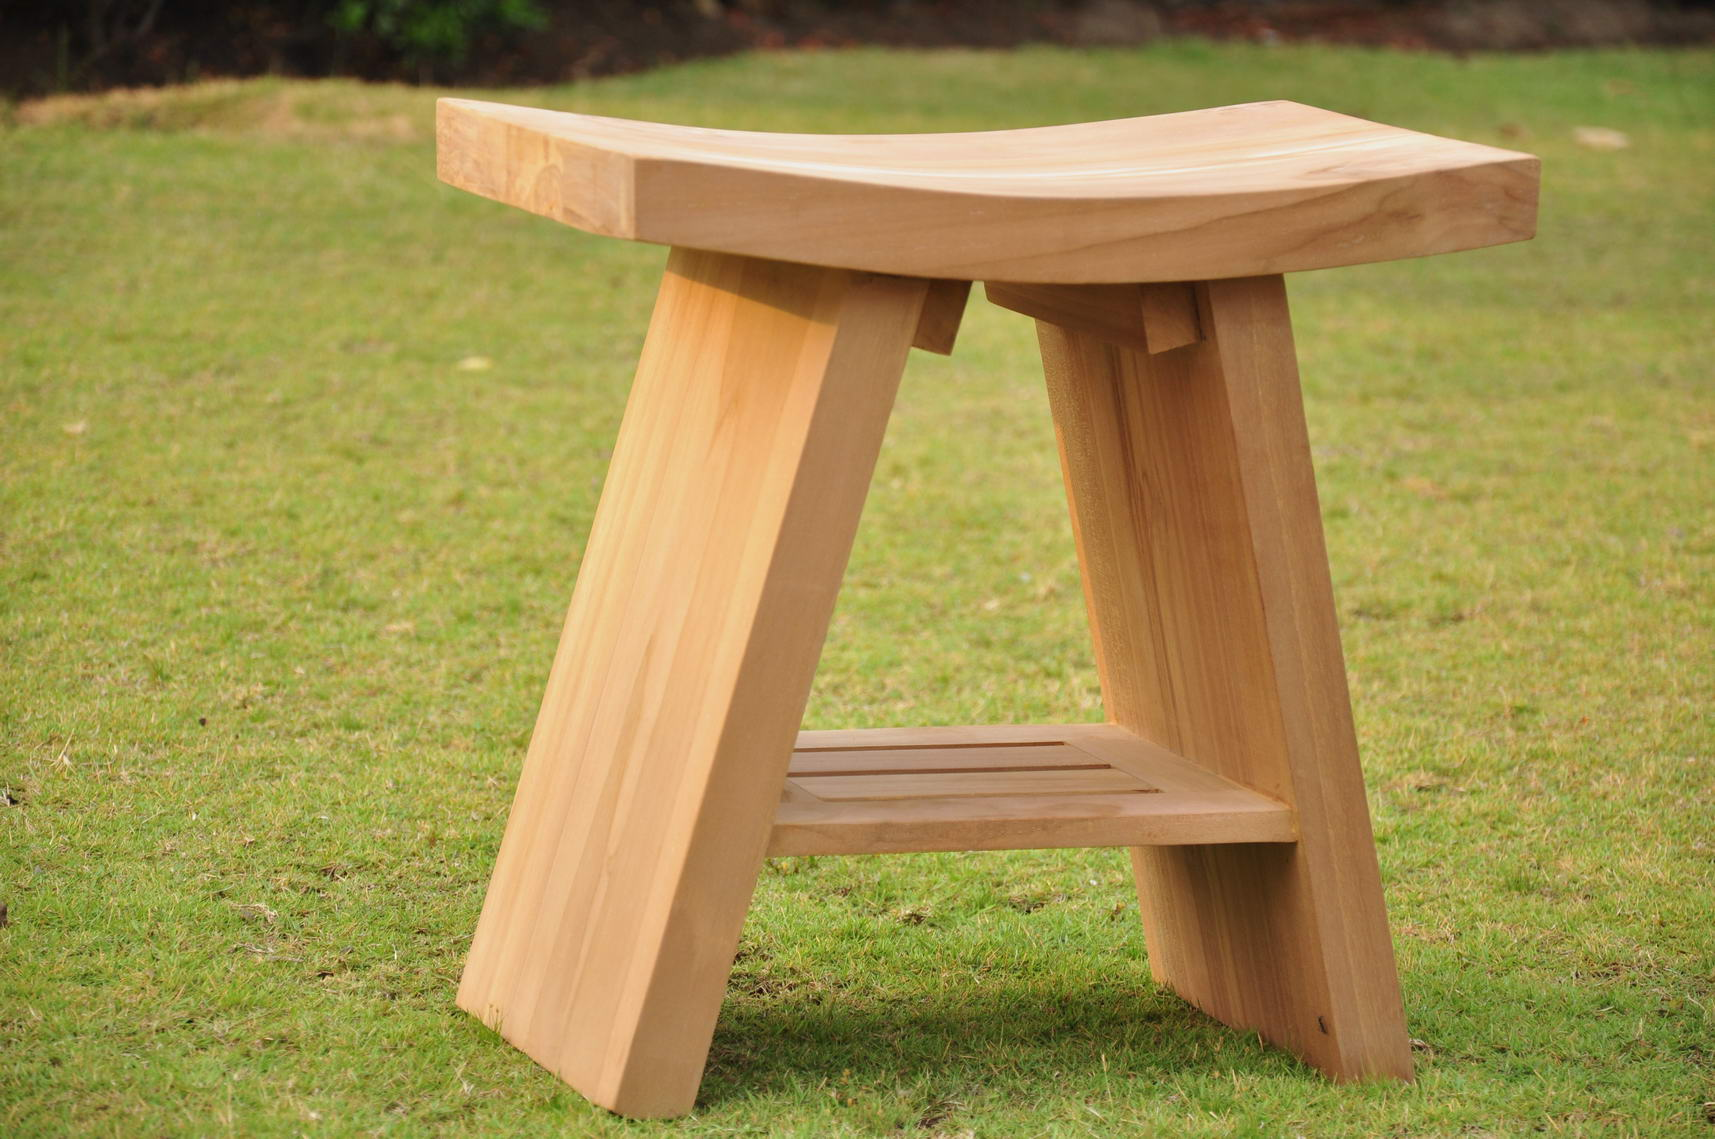 Solid Teak Shower Bench | Home design ideas